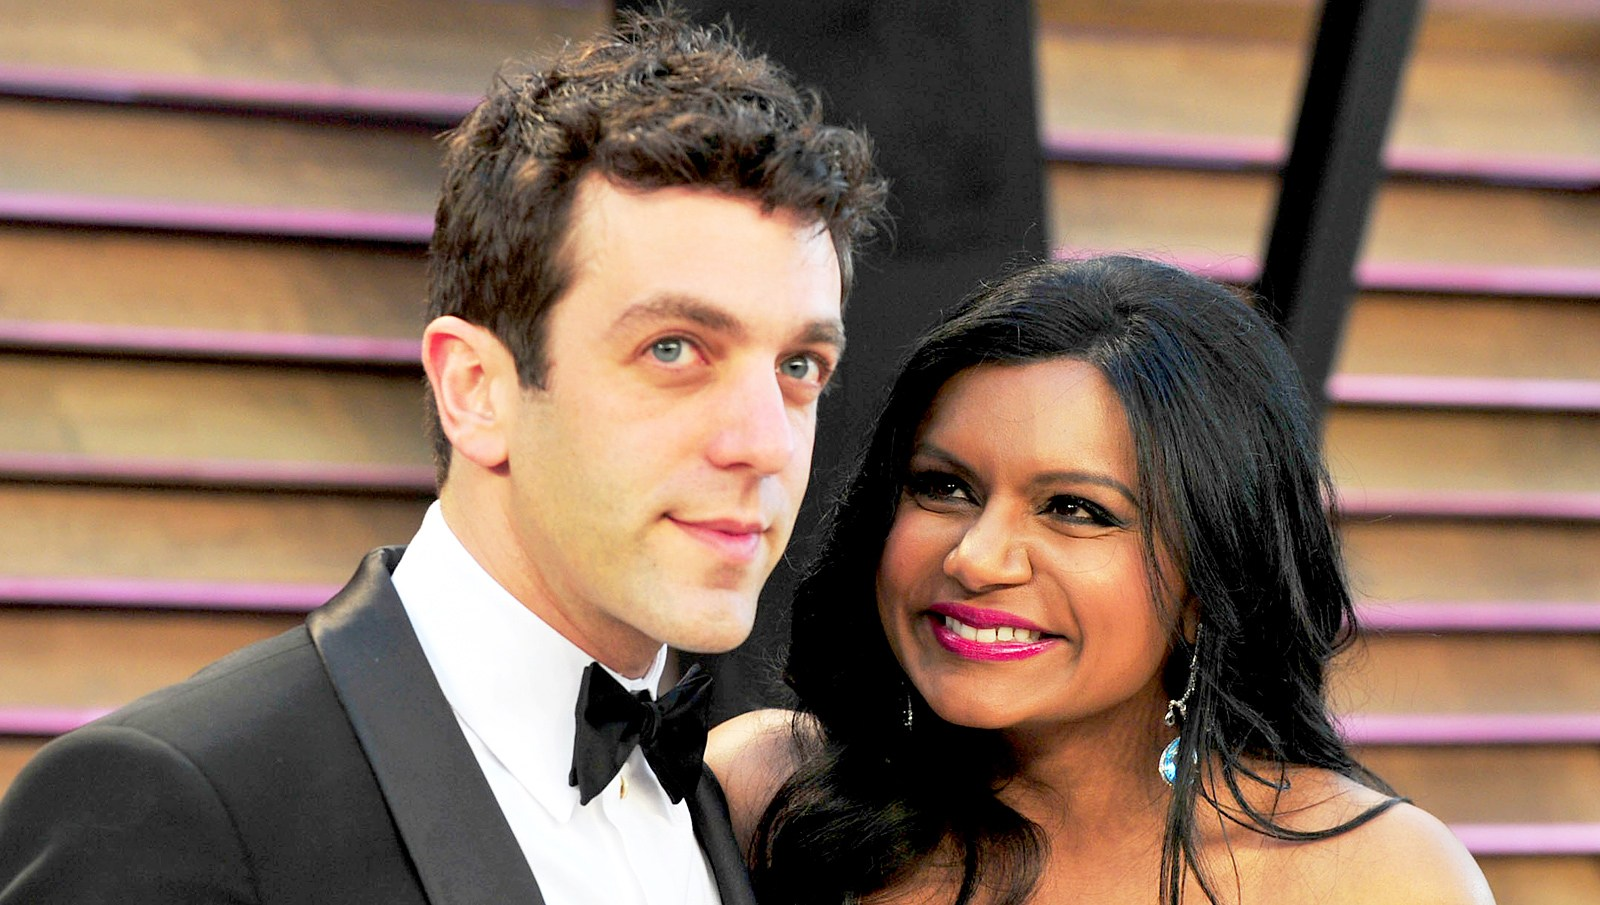 B.J. Novak and Mindy Kaling attend the 2014 Vanity Fair Oscar Party hosted by Graydon Carter in West Hollywood, California.